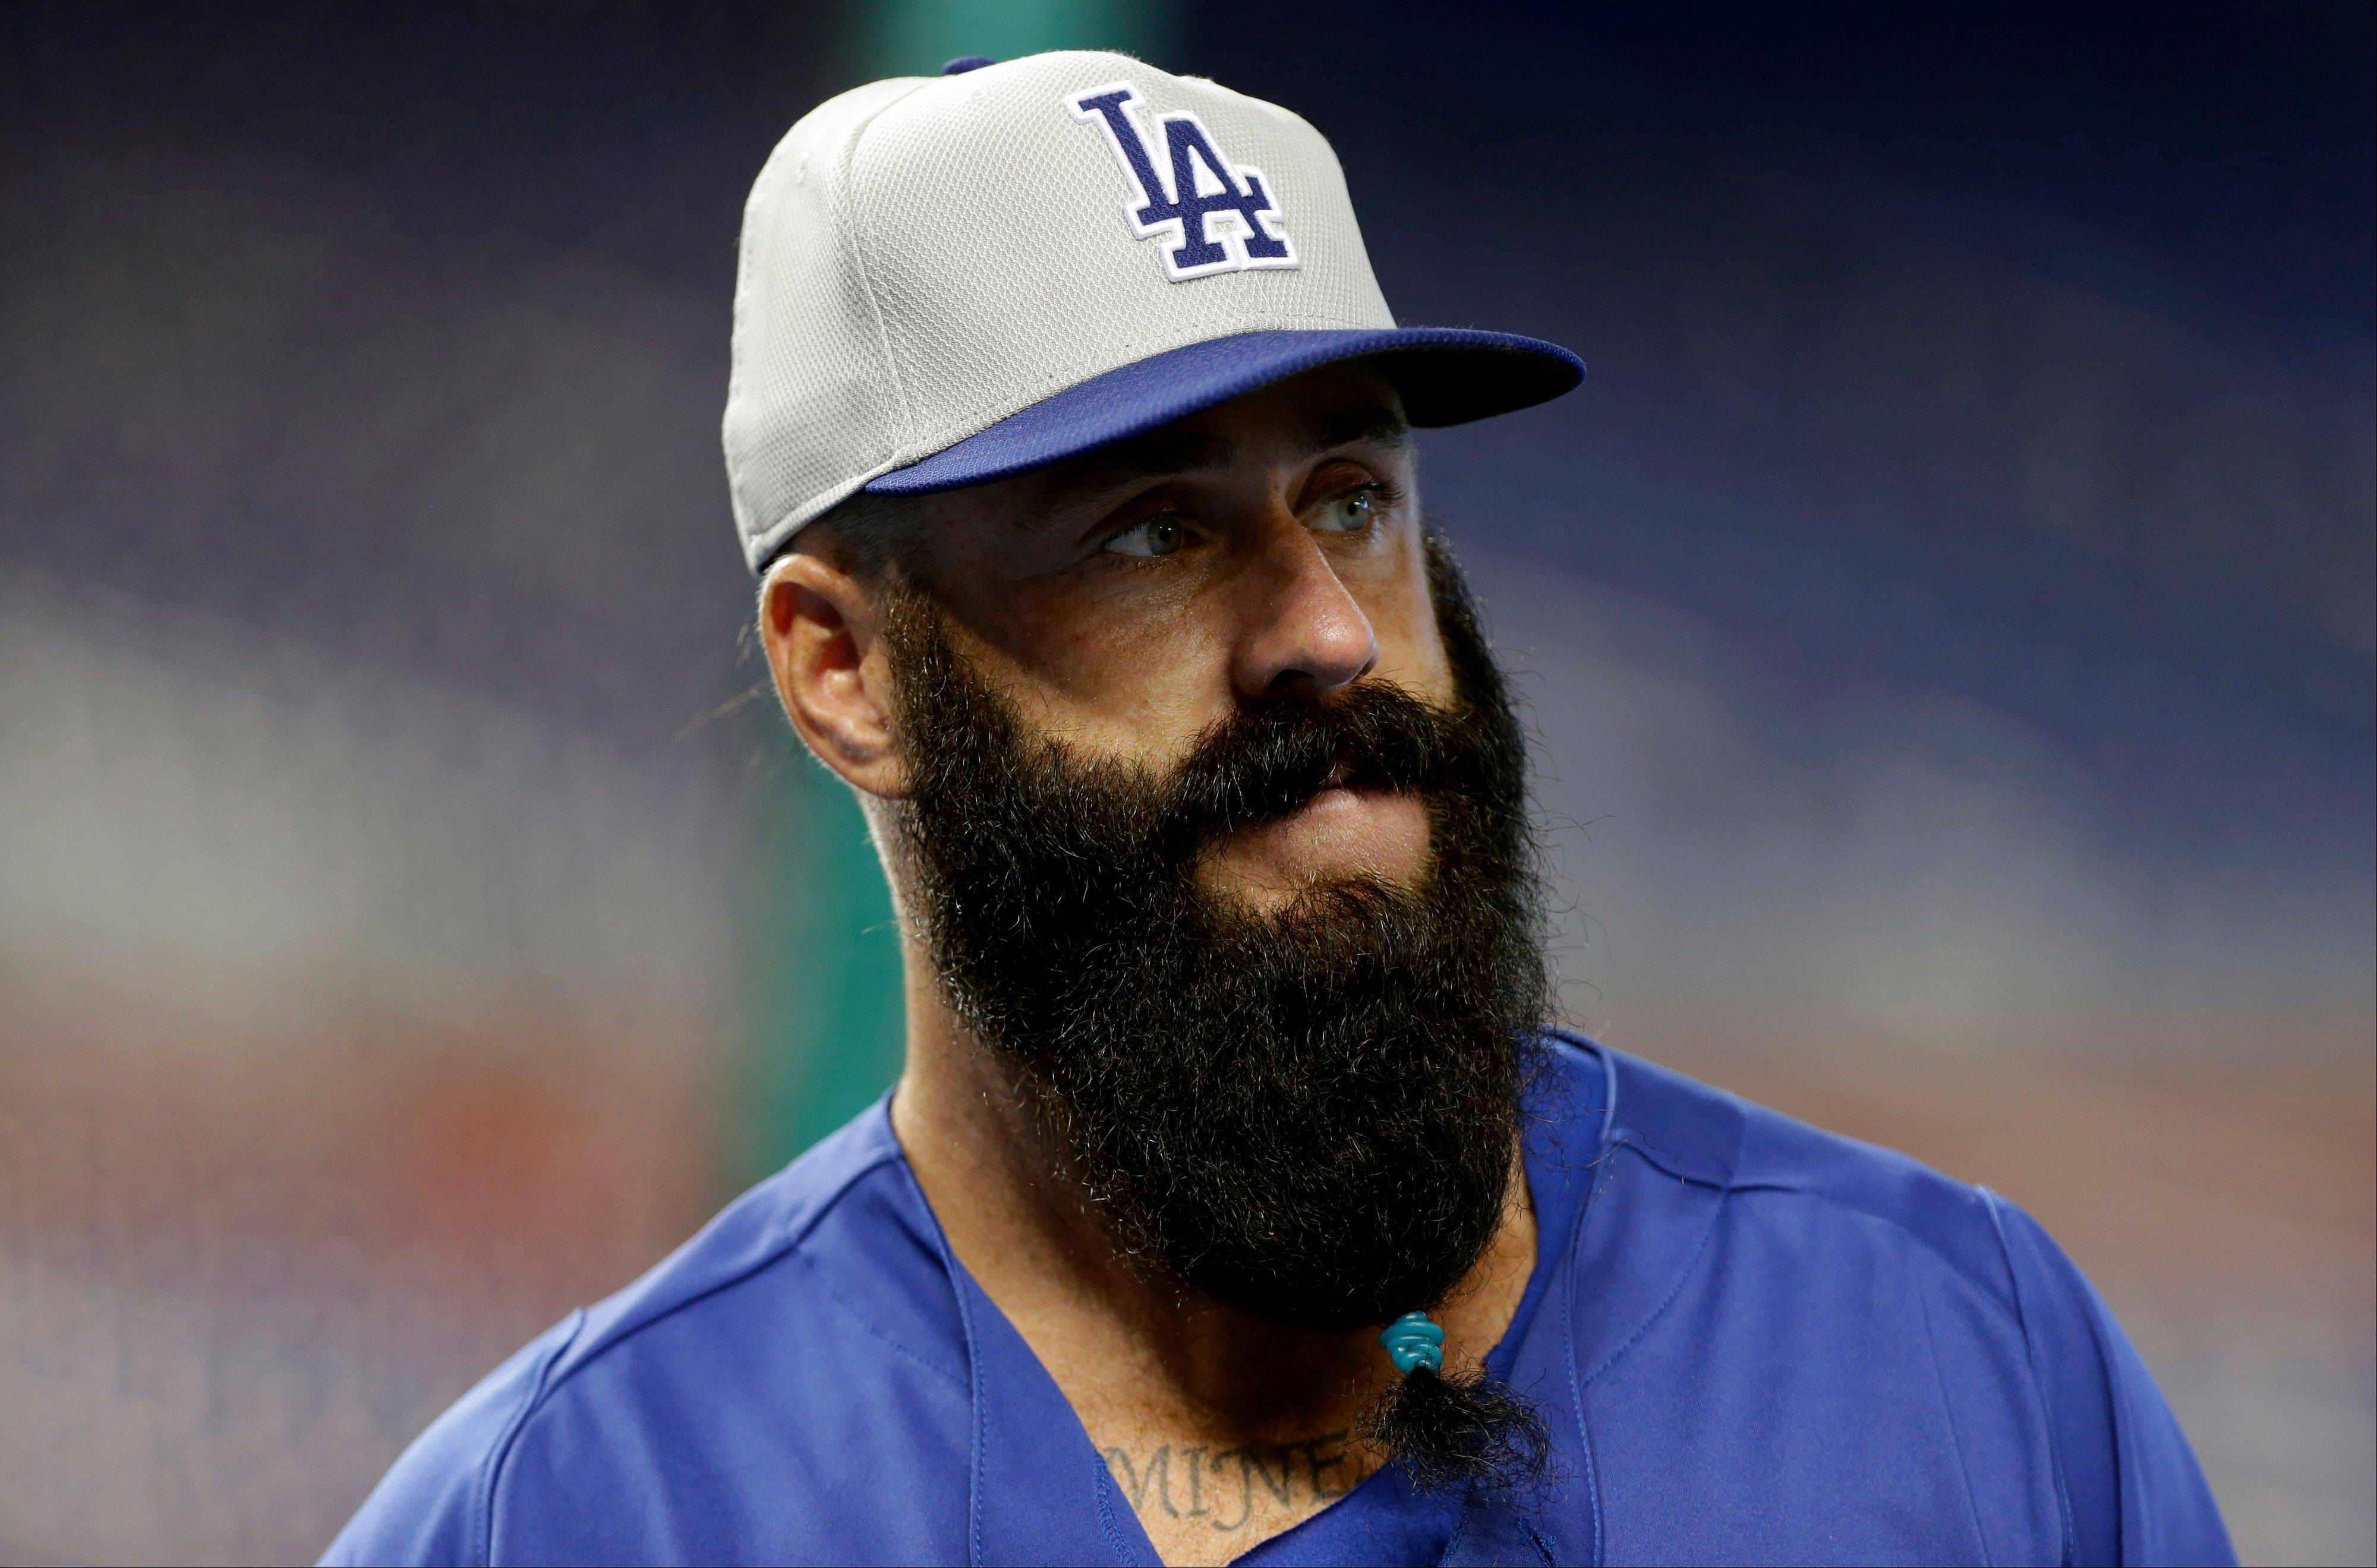 Los Angeles Dodgers relief pitcher Brian Wilson watching batting practice before an August game against the Miami Marlins.